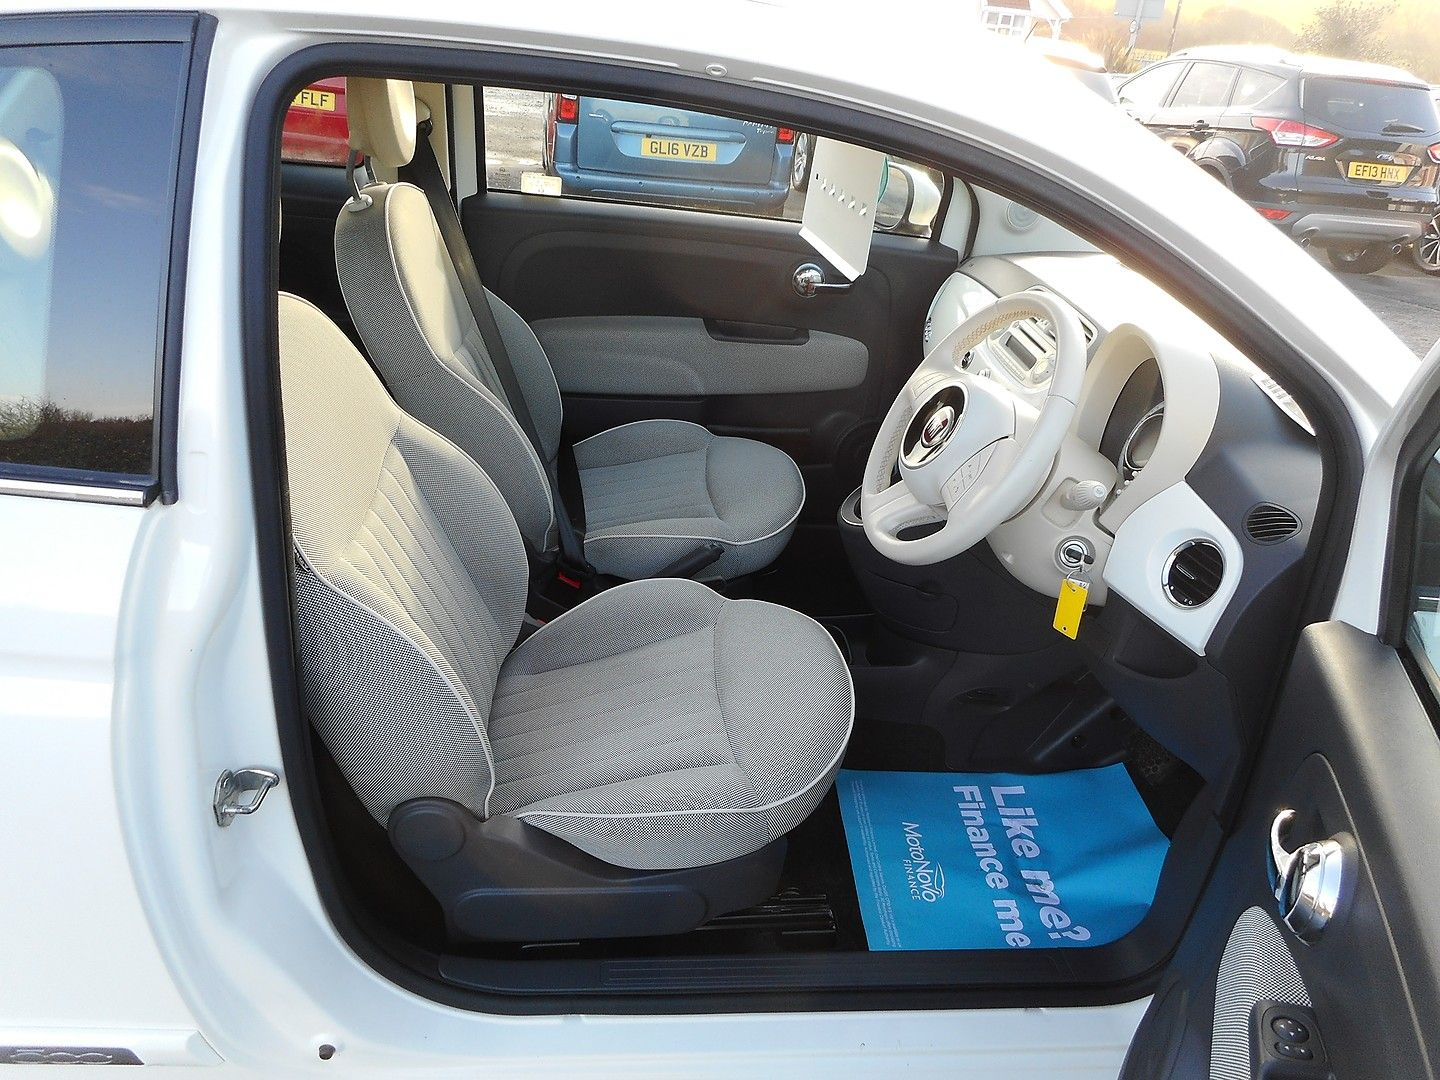 FIAT 500 1.2i Lounge S/S automatic (2013) - Picture 12